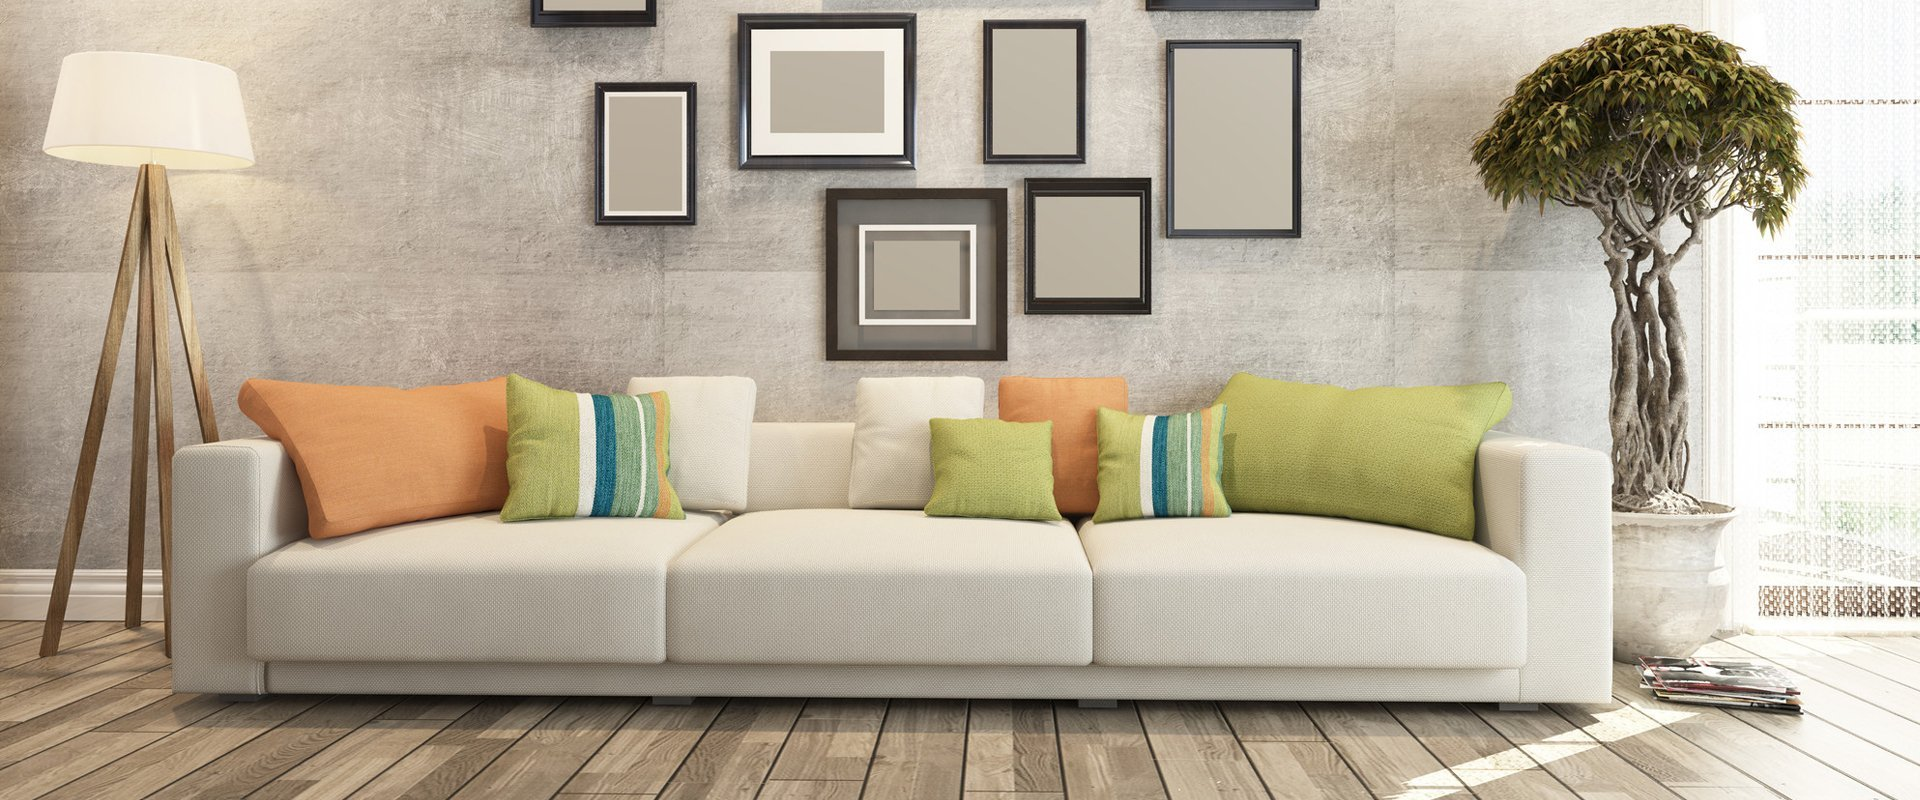 Comfortable Stylish Sofa Sectional Sofa Design Most